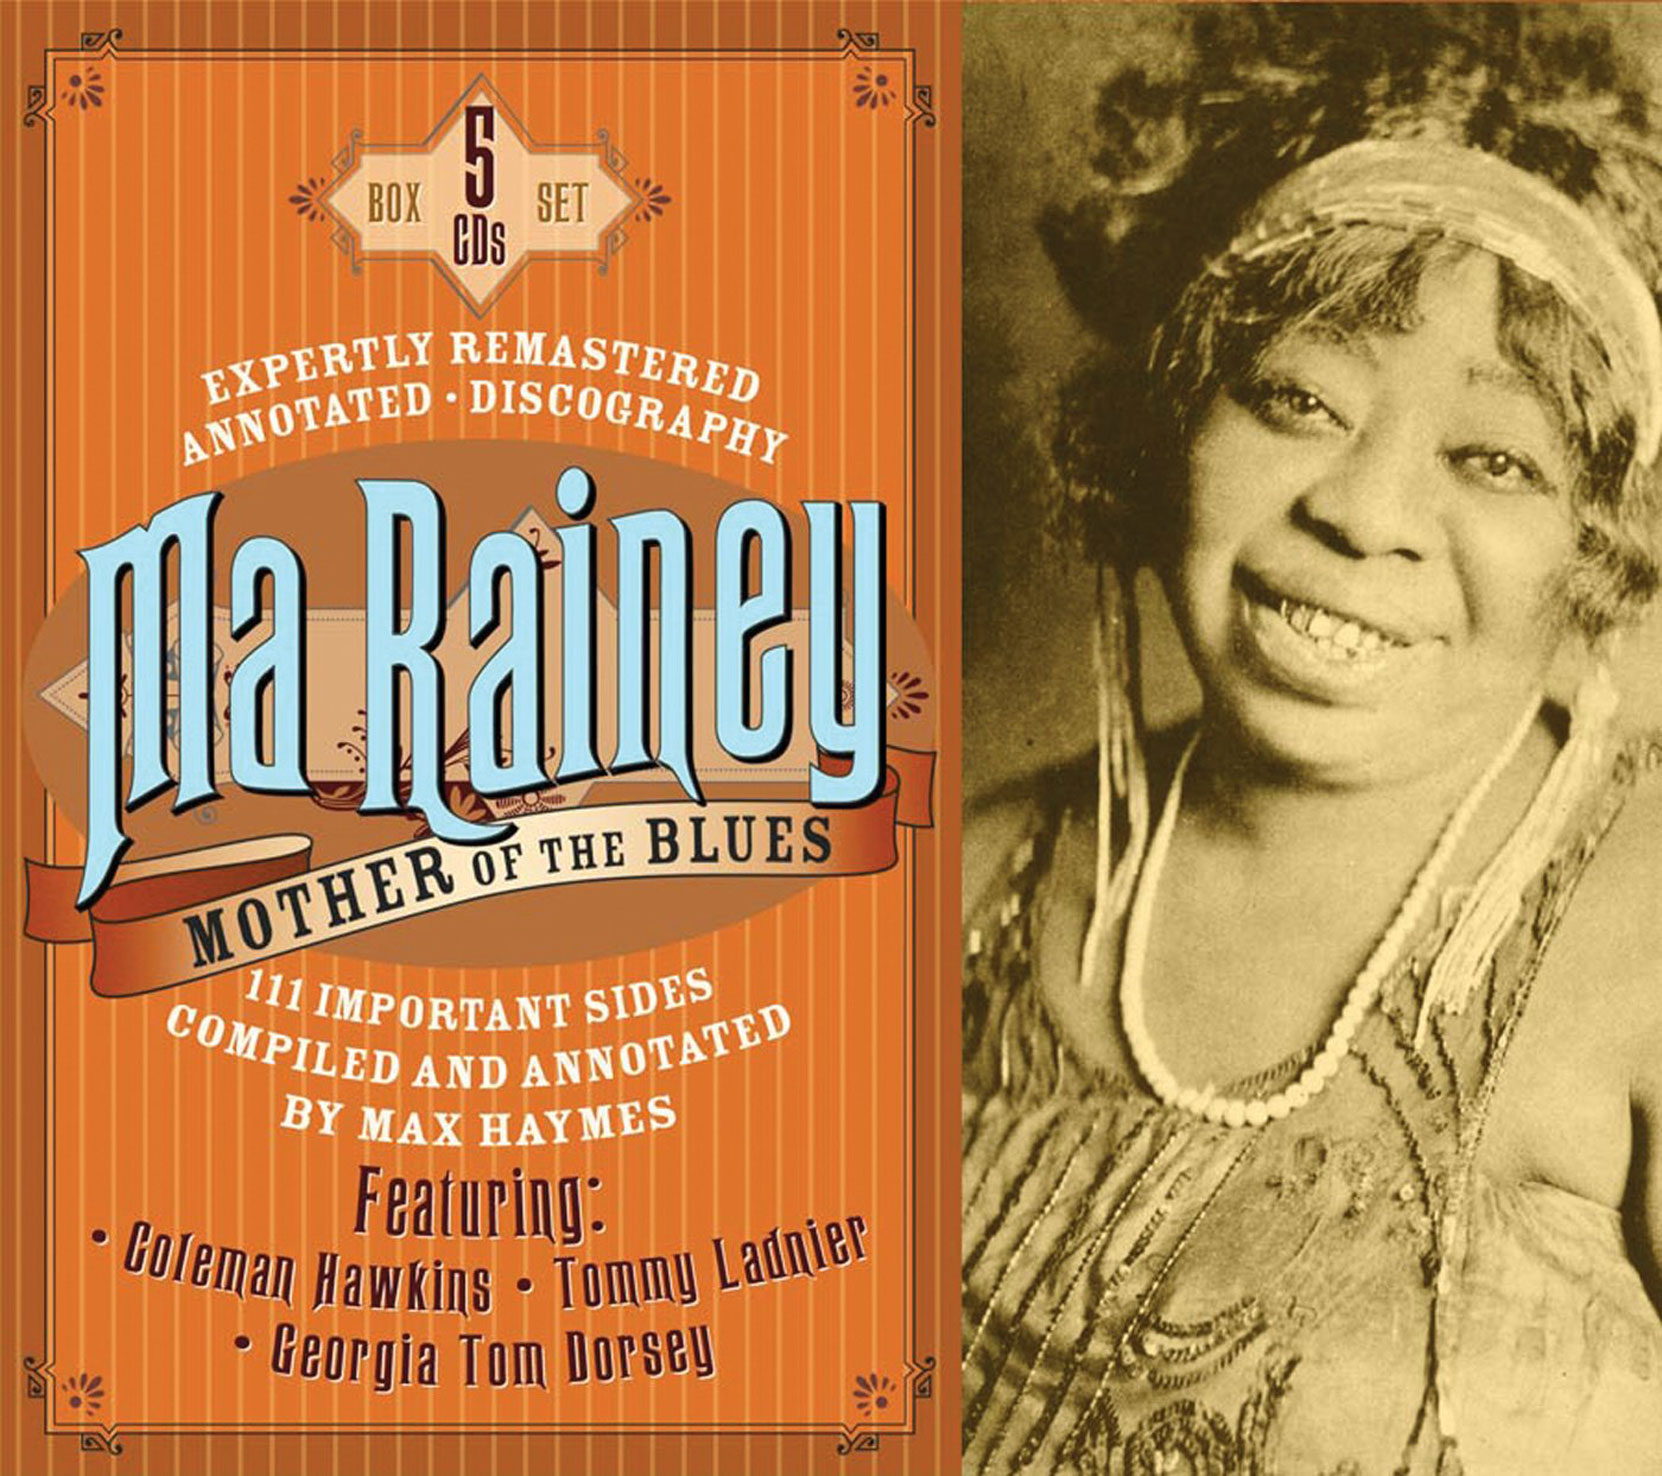 CD cover, Ma Rainey, Mother of the Blues, a 5 CD box set released onJSP Records.